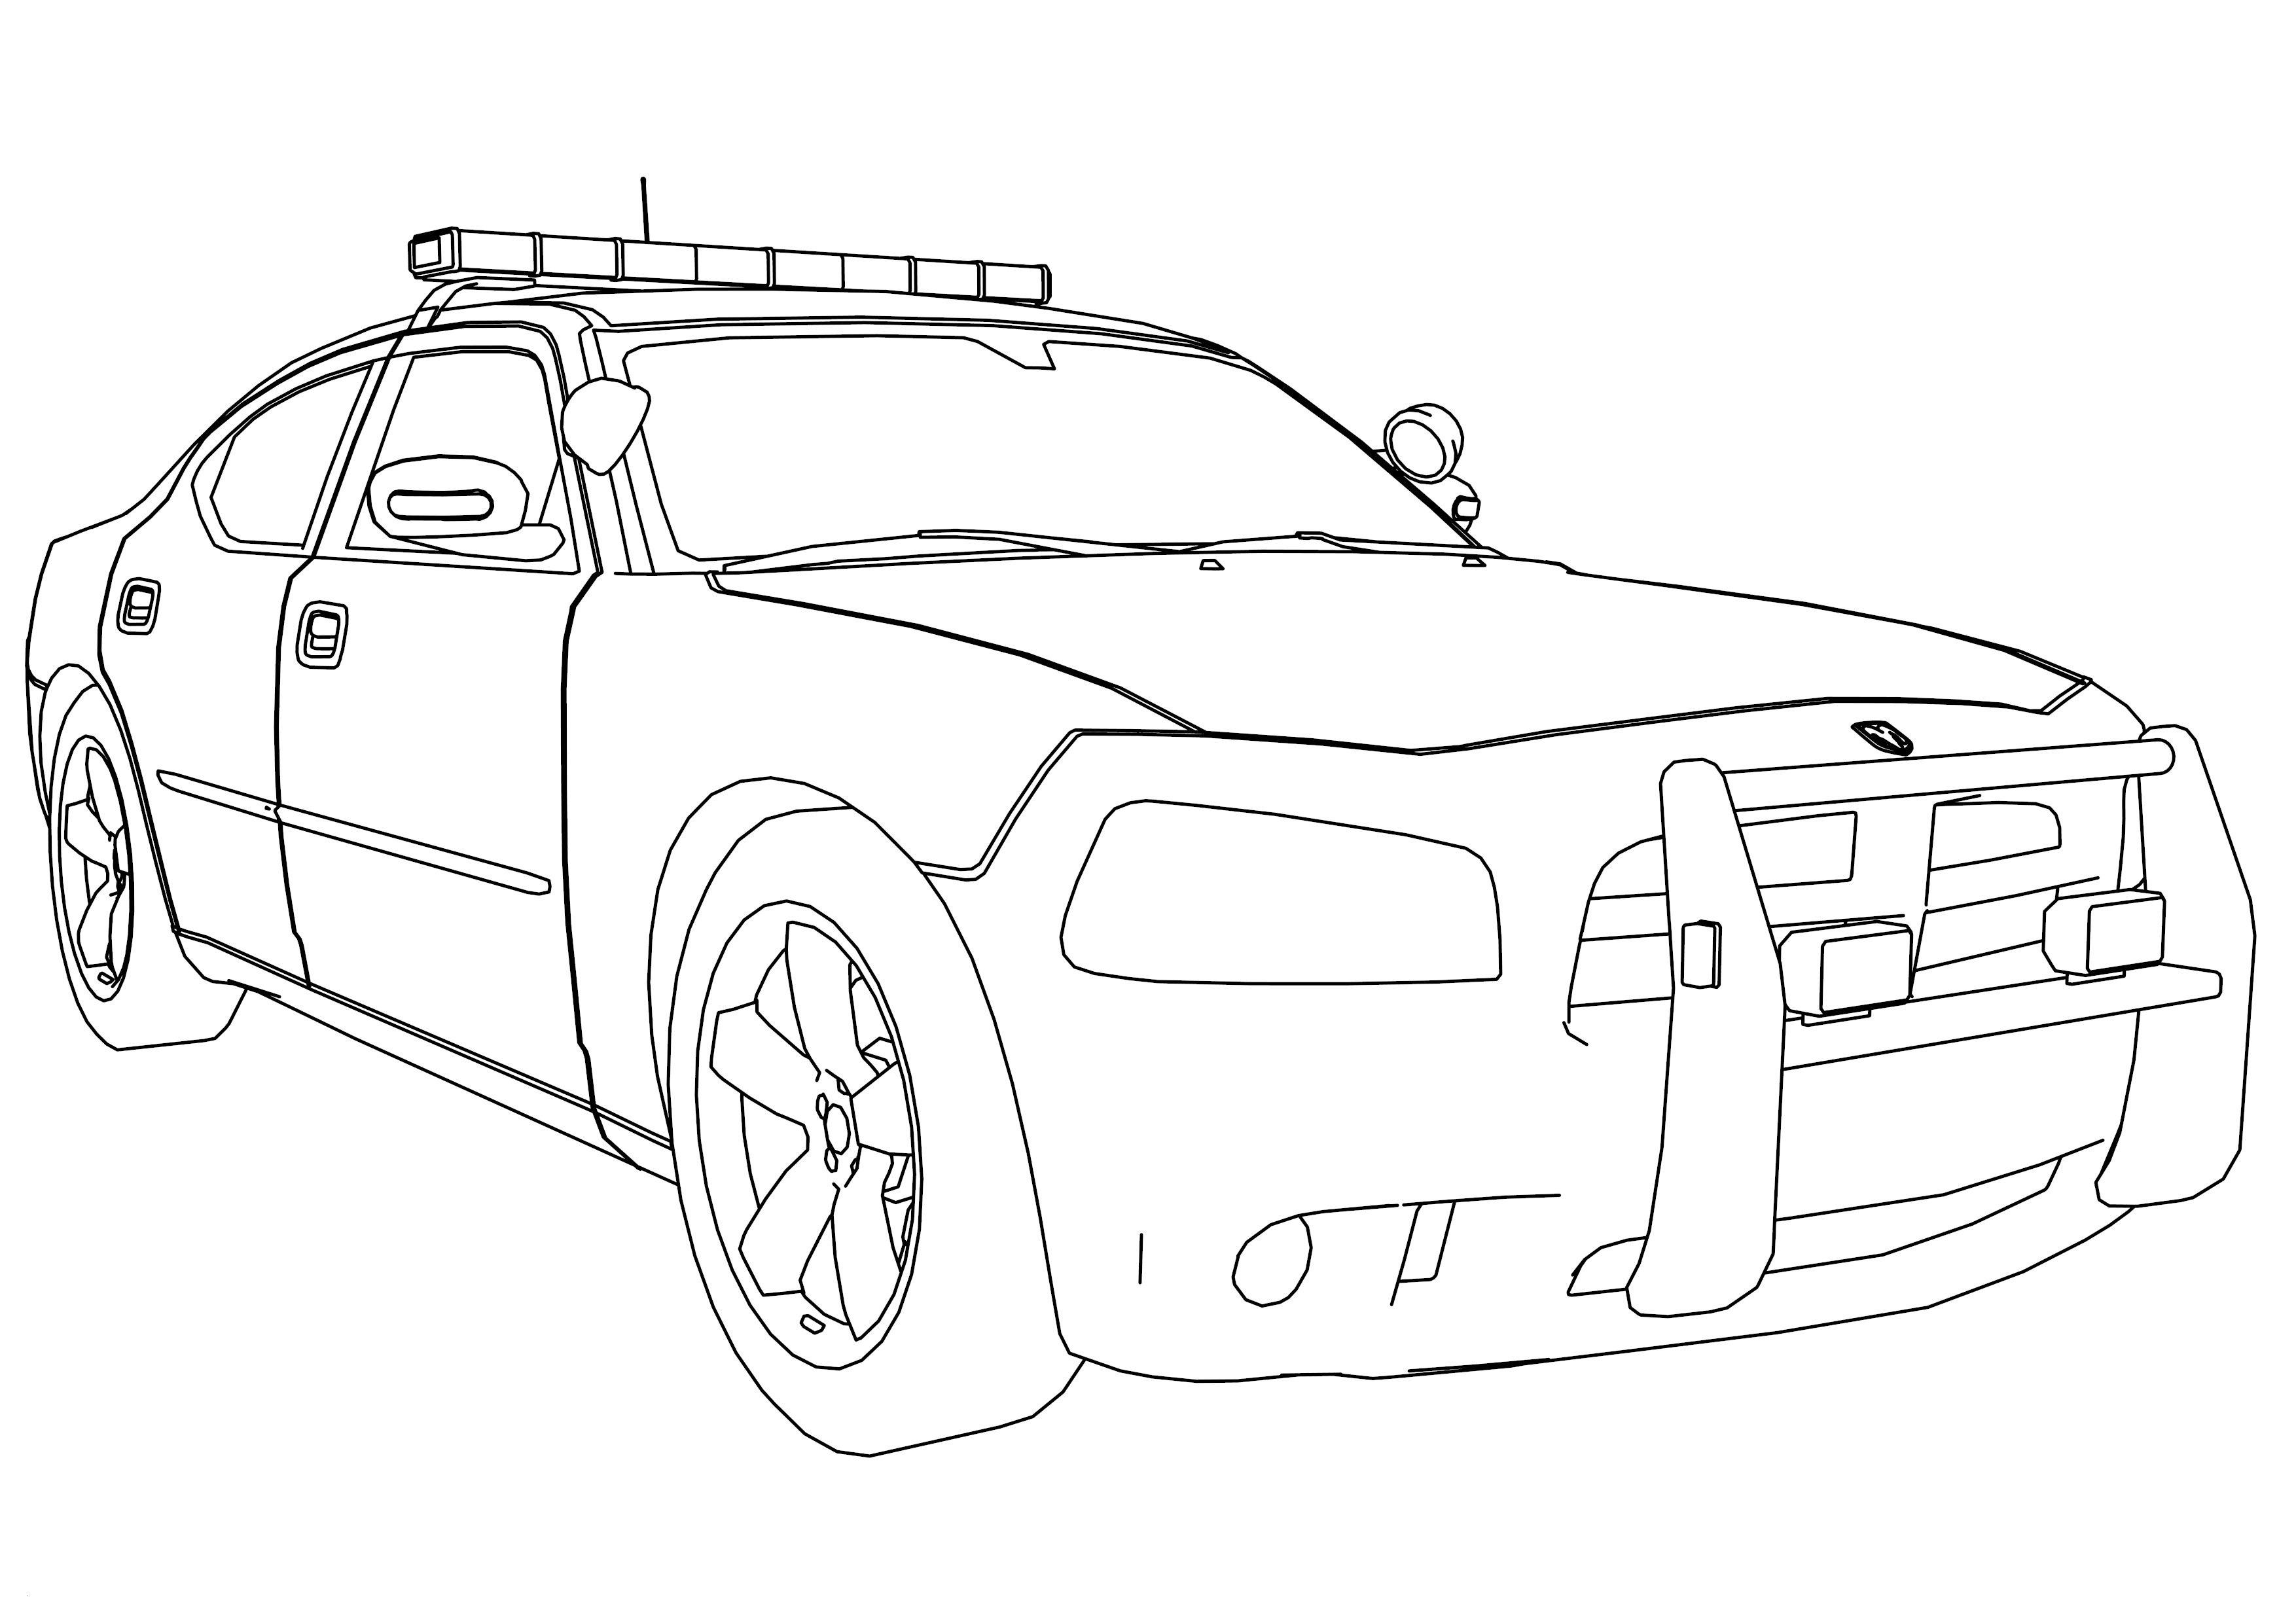 colouring cars car coloring pages getcoloringpagescom colouring cars